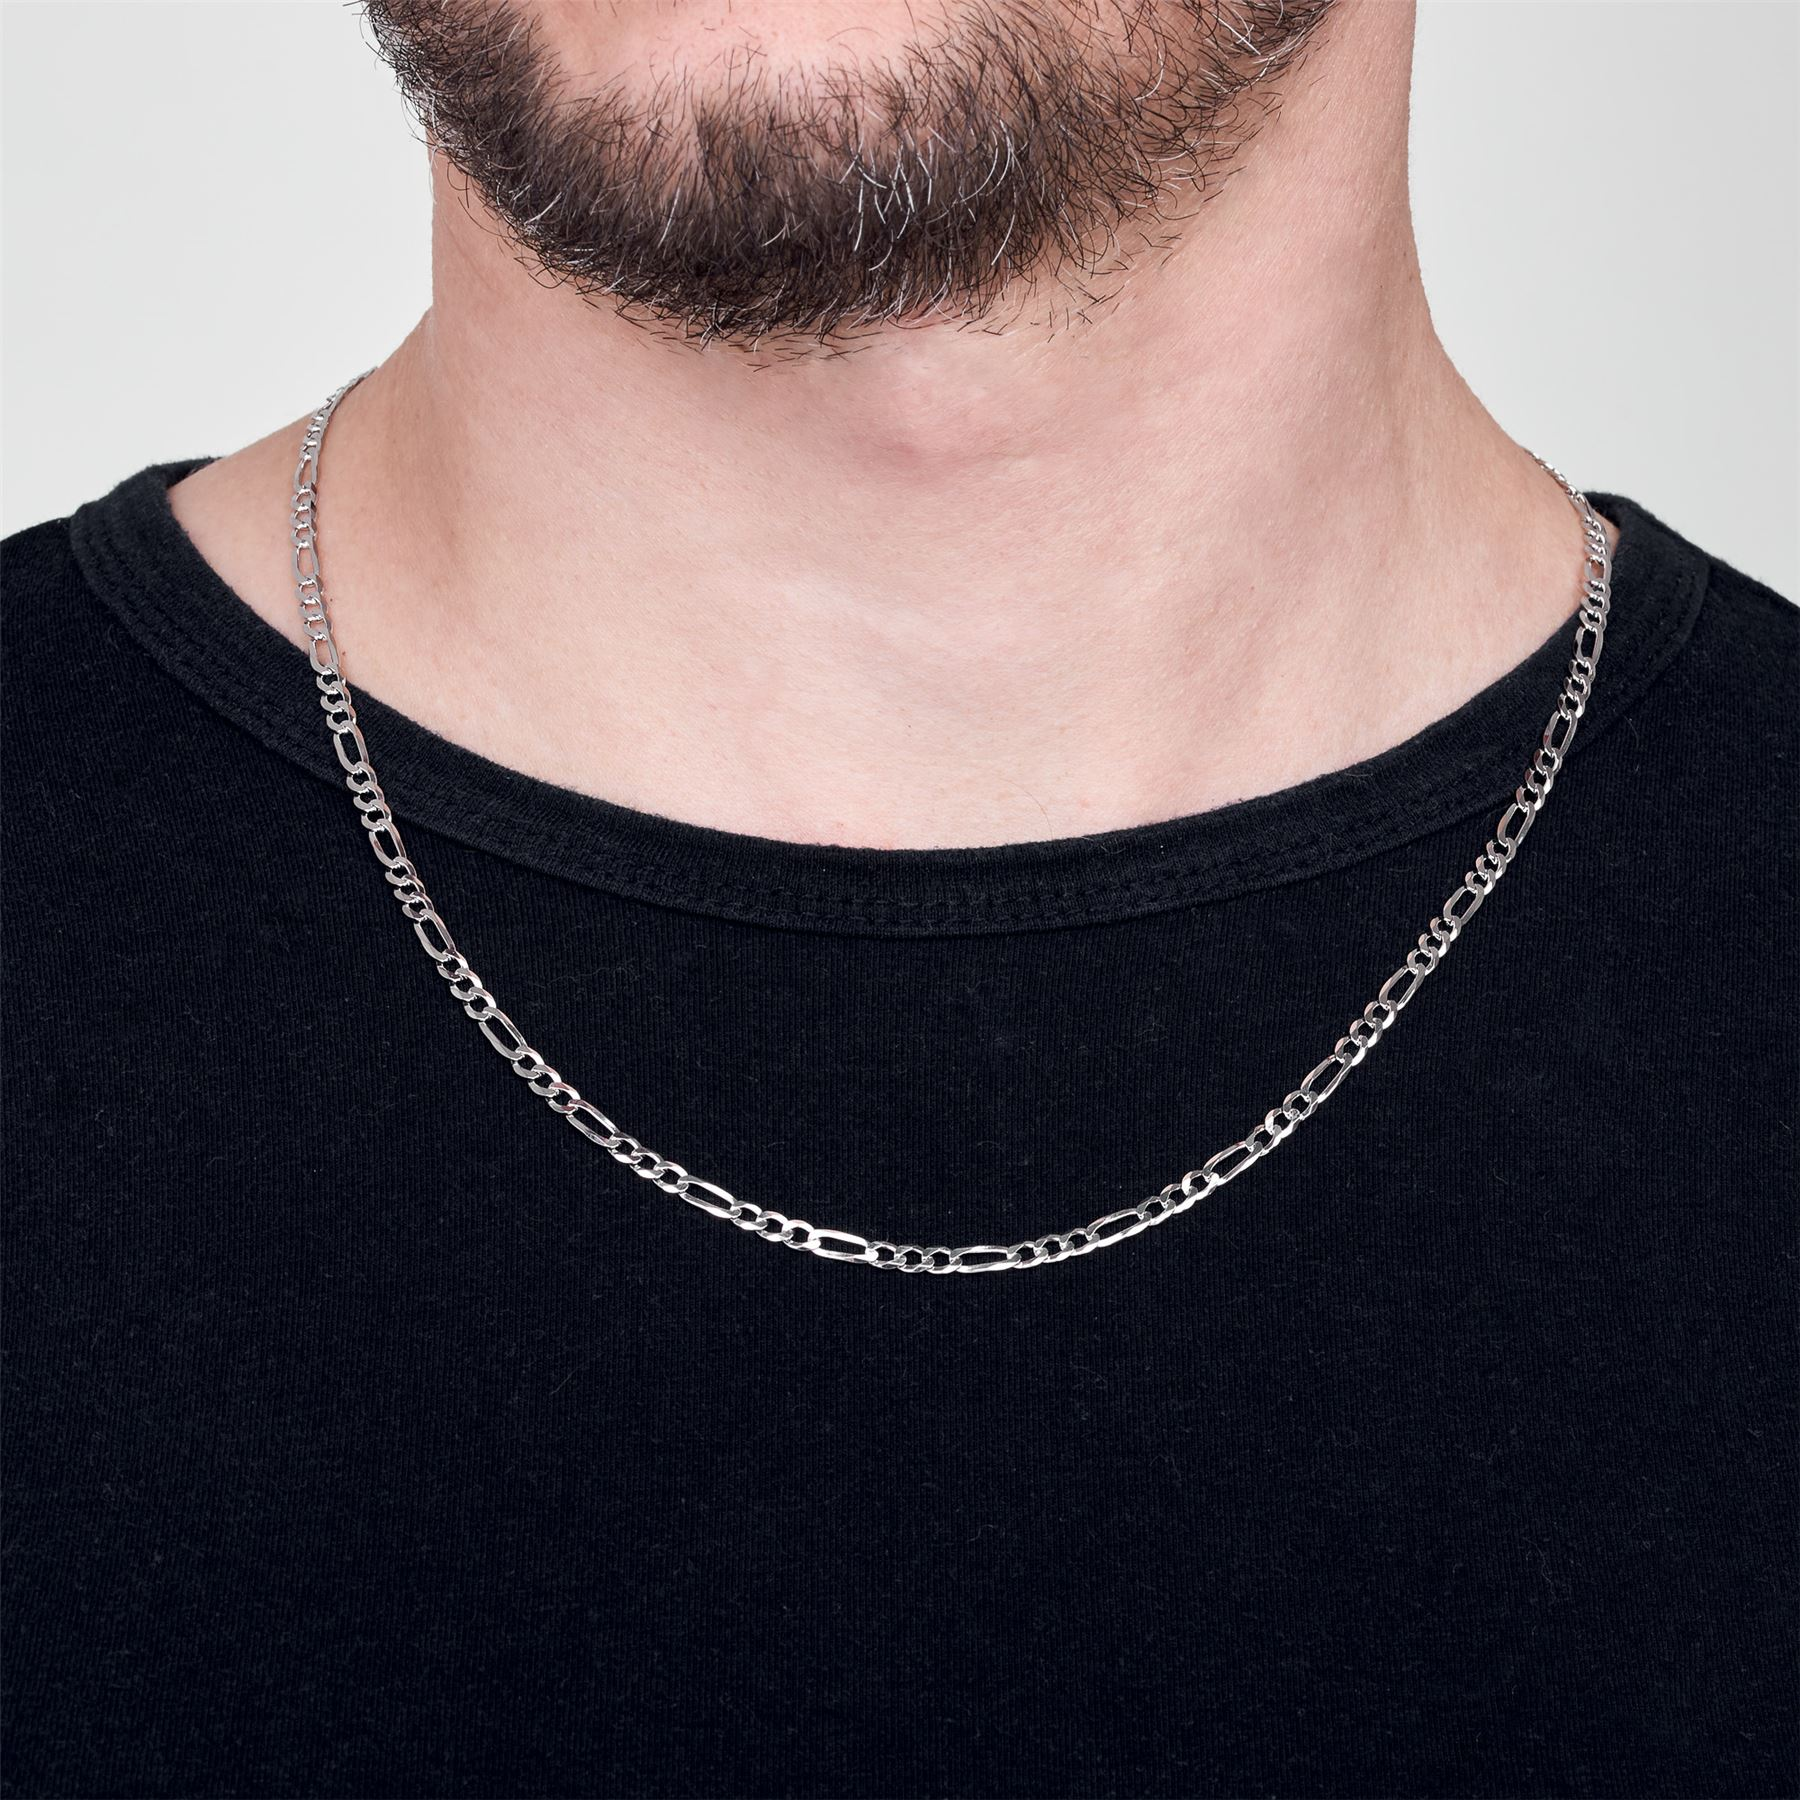 Amberta-925-Sterling-Silver-Link-Chain-Mens-Curb-Cuban-Necklace-ALL-SIZES-Italy thumbnail 37